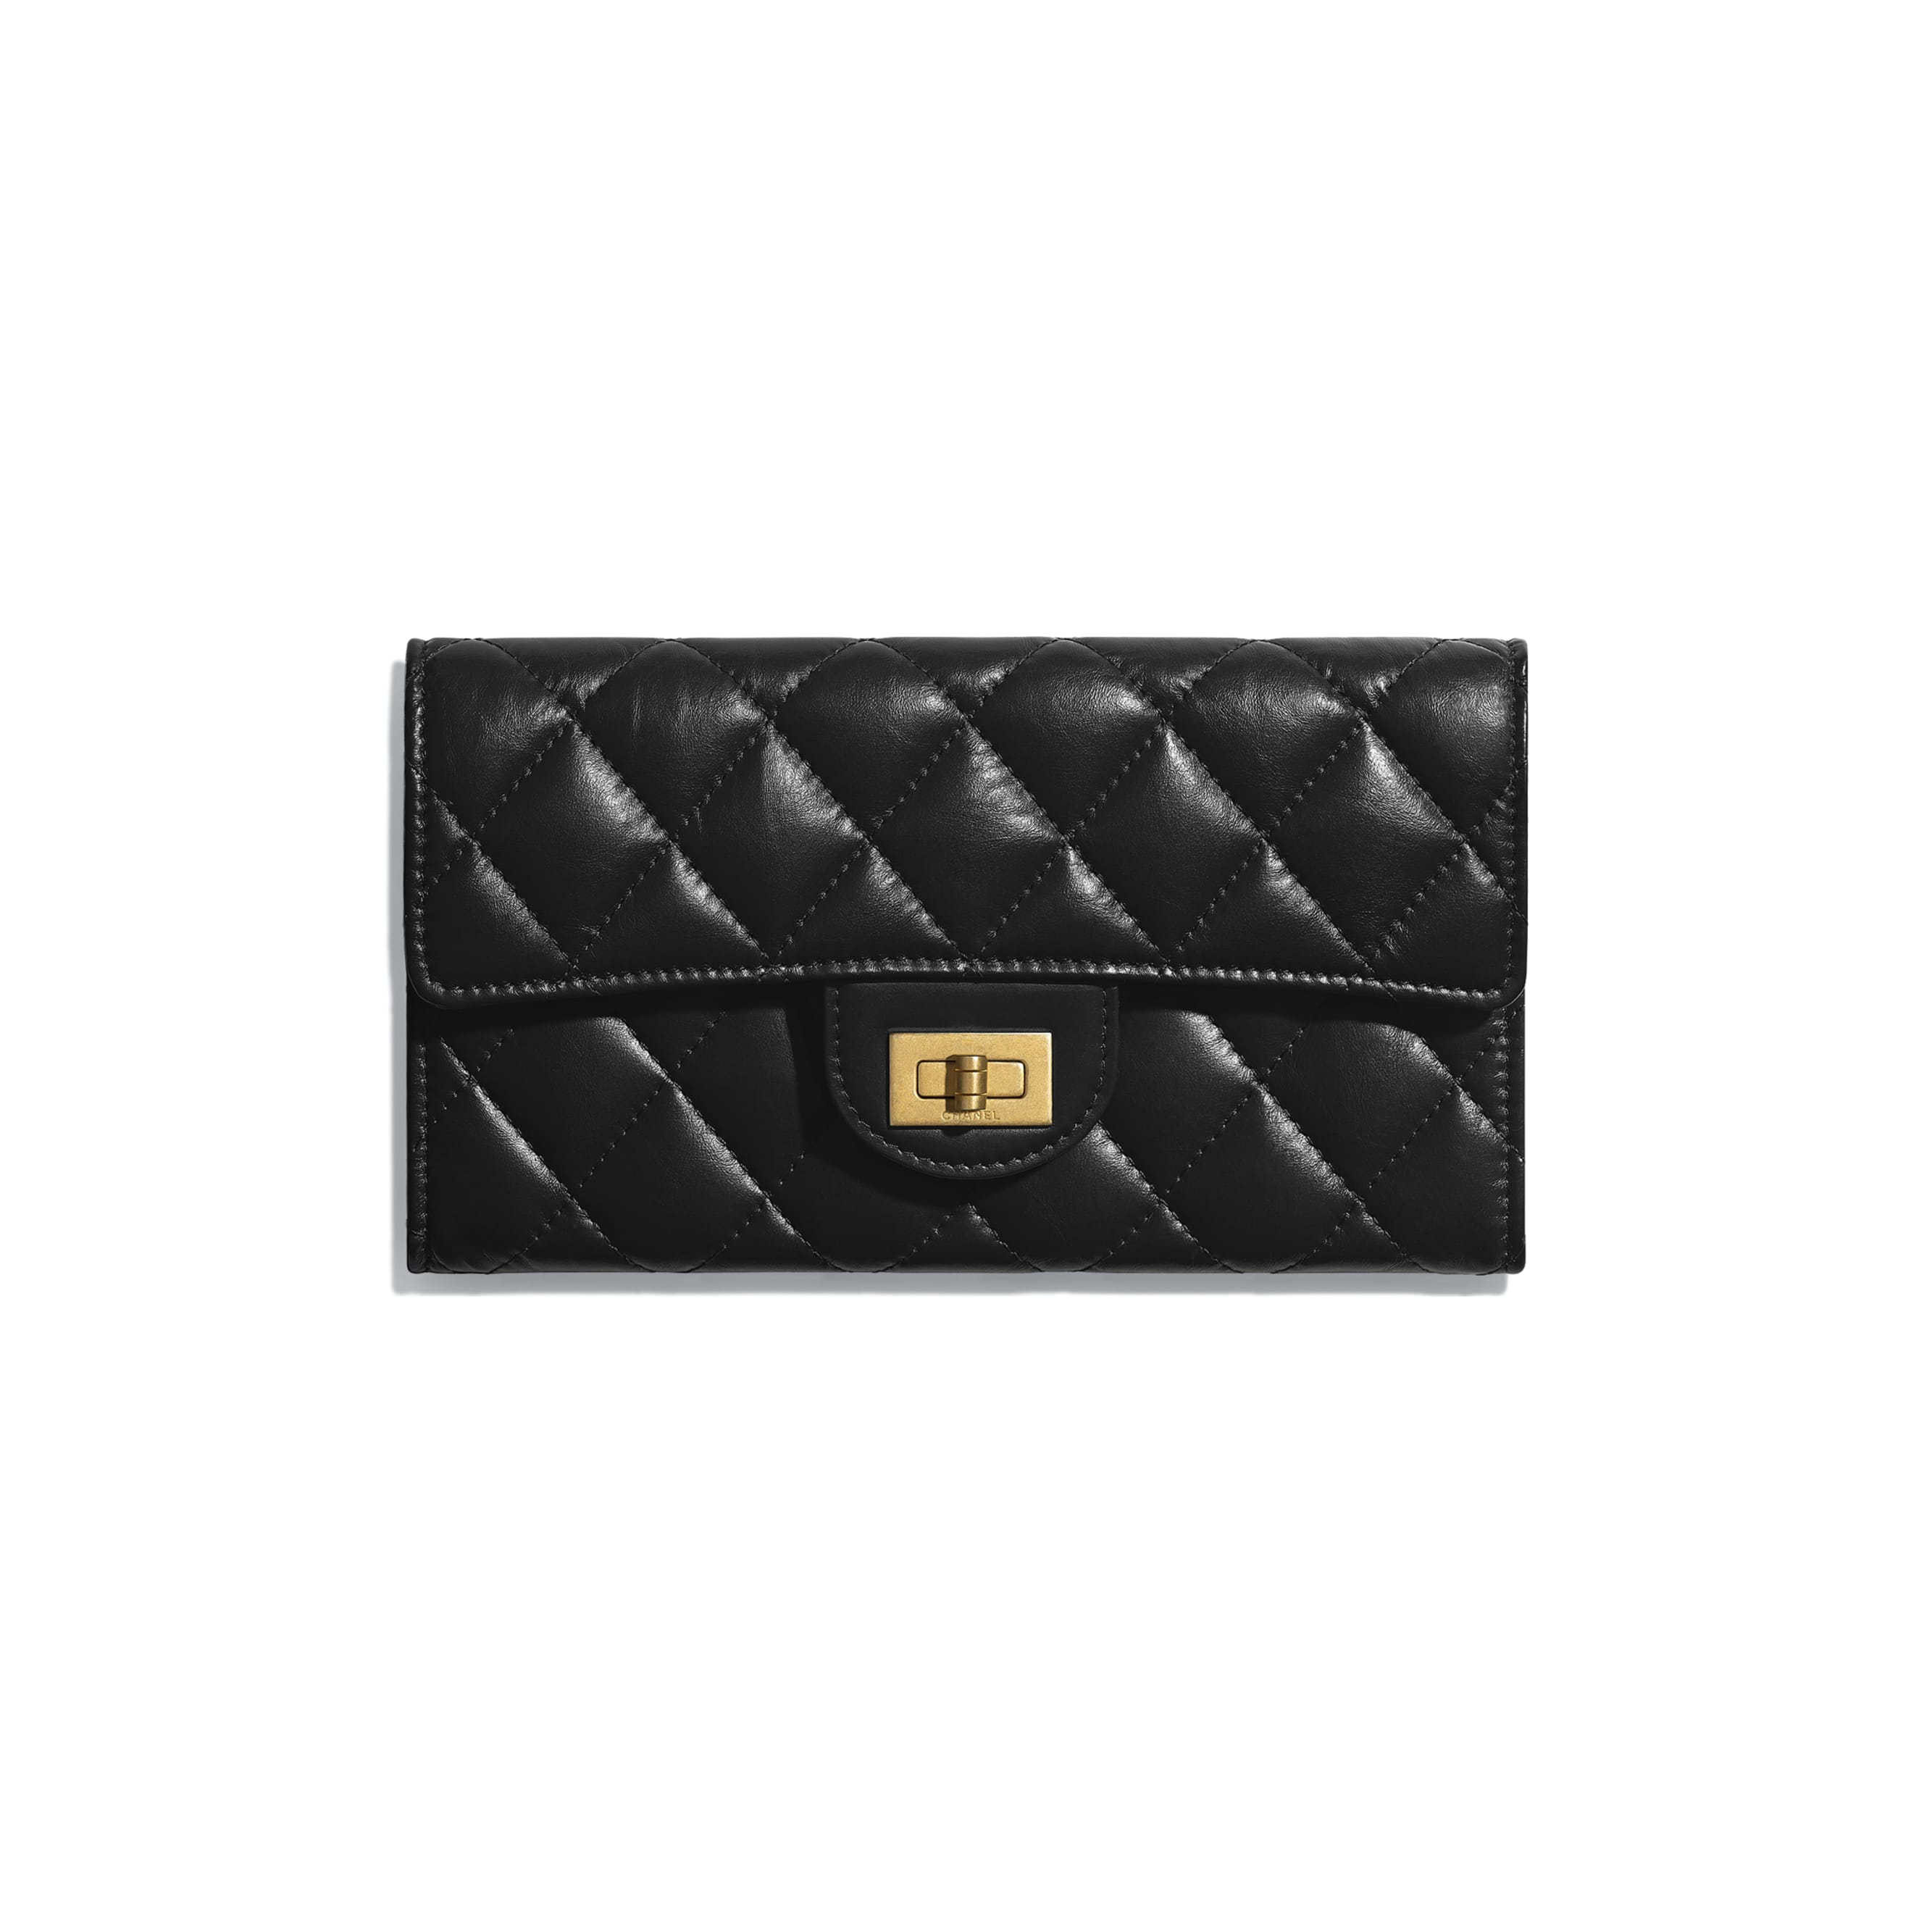 2.55 Long Flap Wallet - Black - Aged Calfskin & Gold-Tone Metal - Default view - see standard sized version